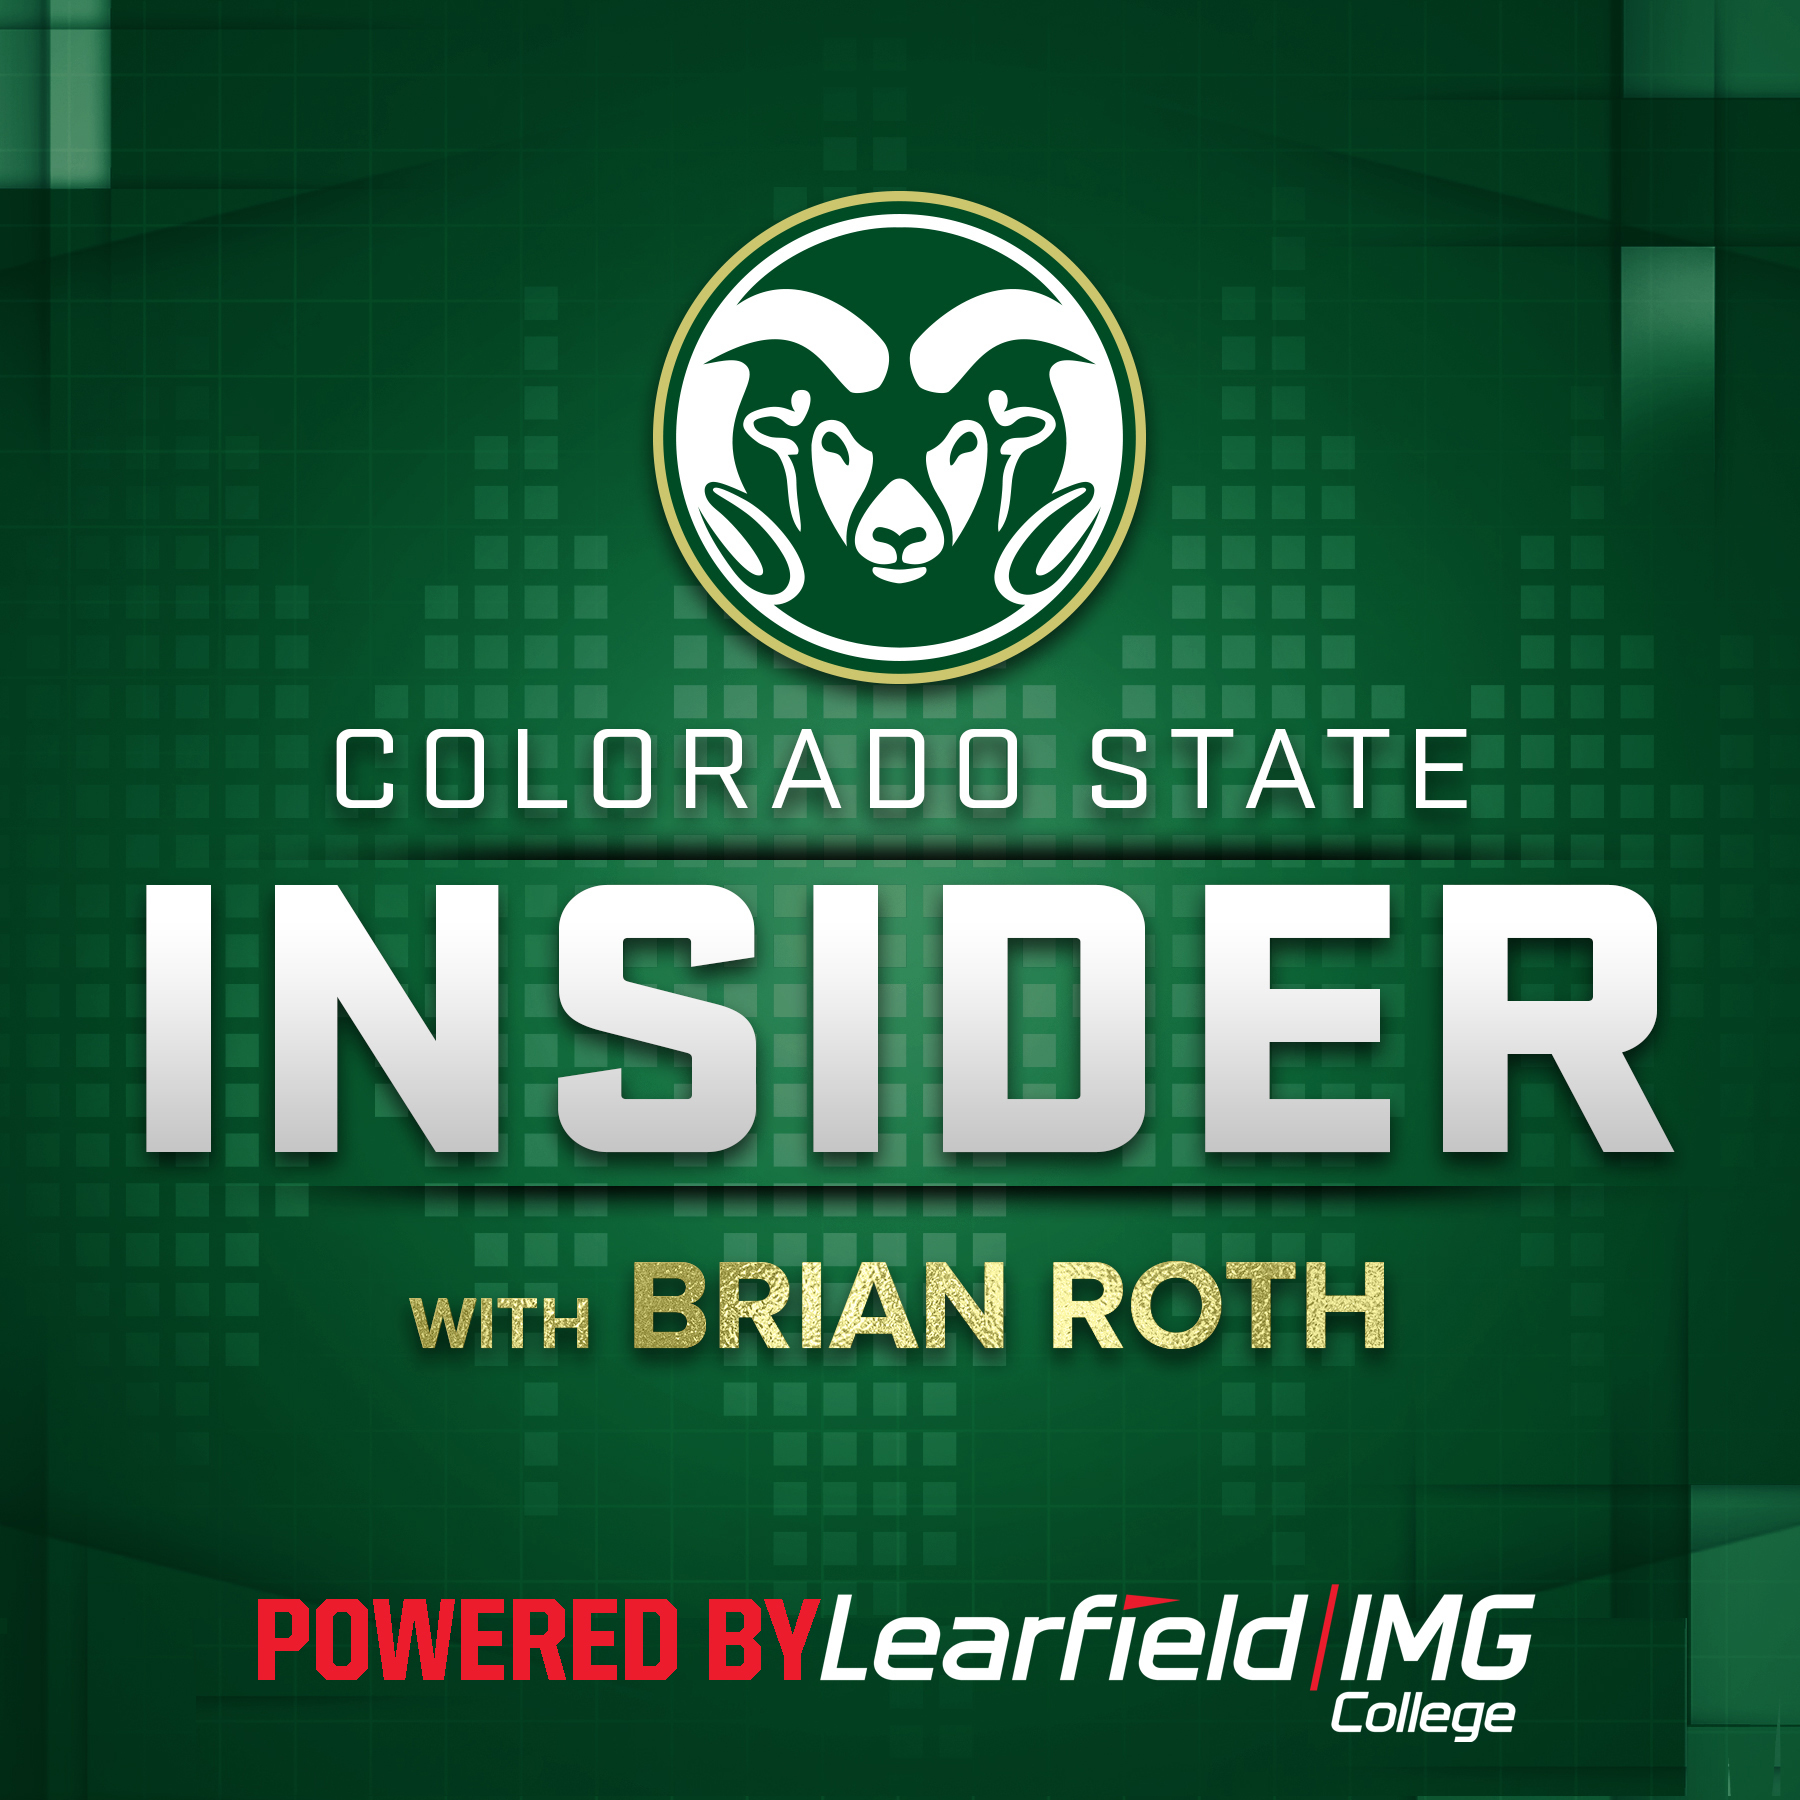 The Colorado State Insider with Brian Roth